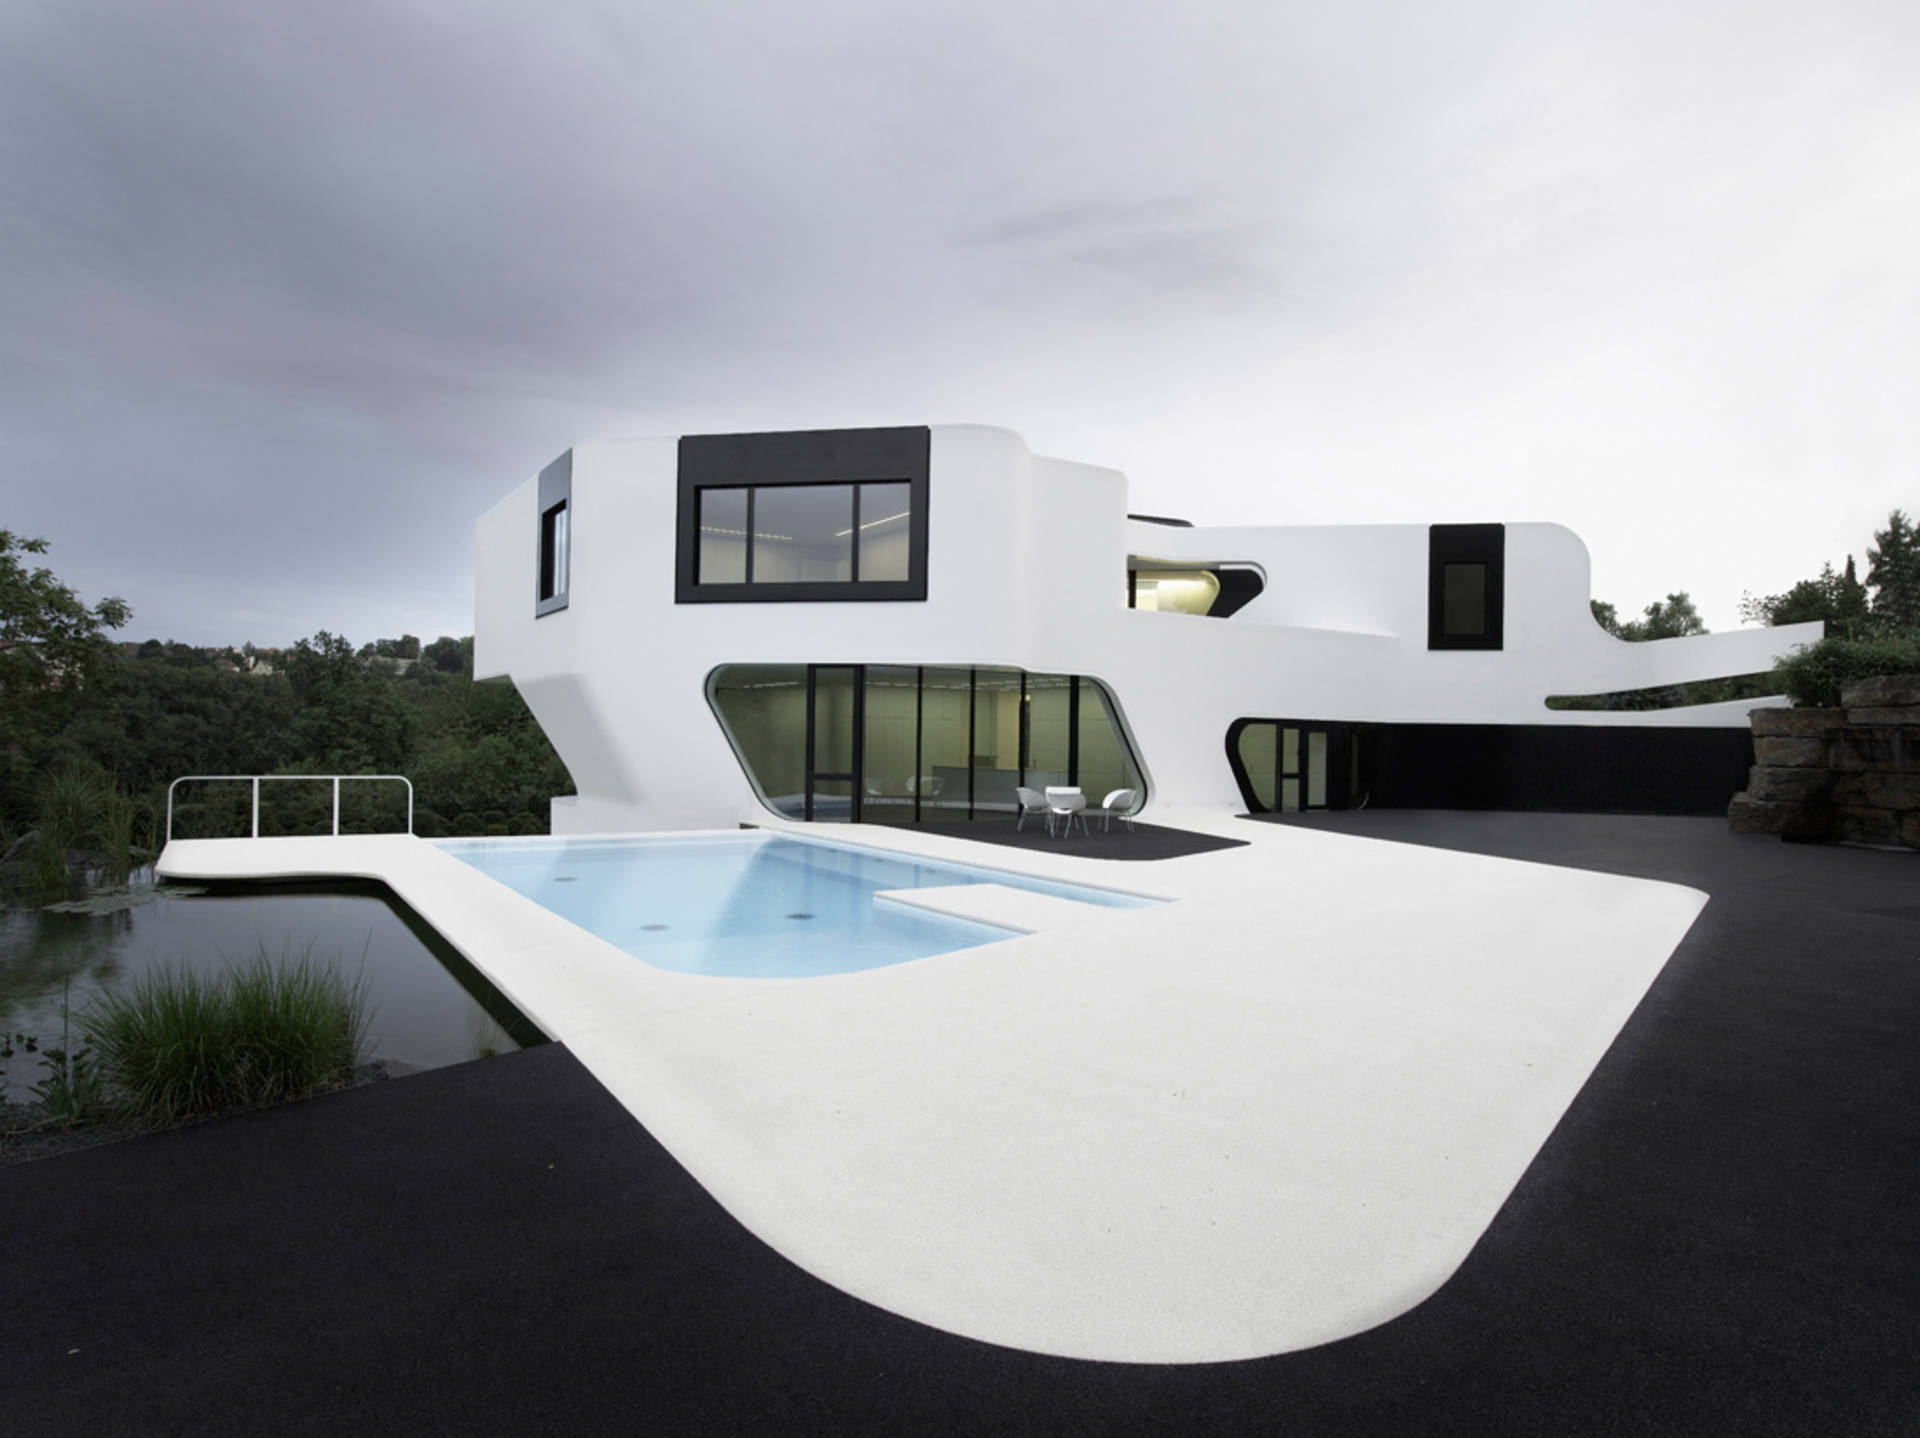 future architecture designs - 792×540